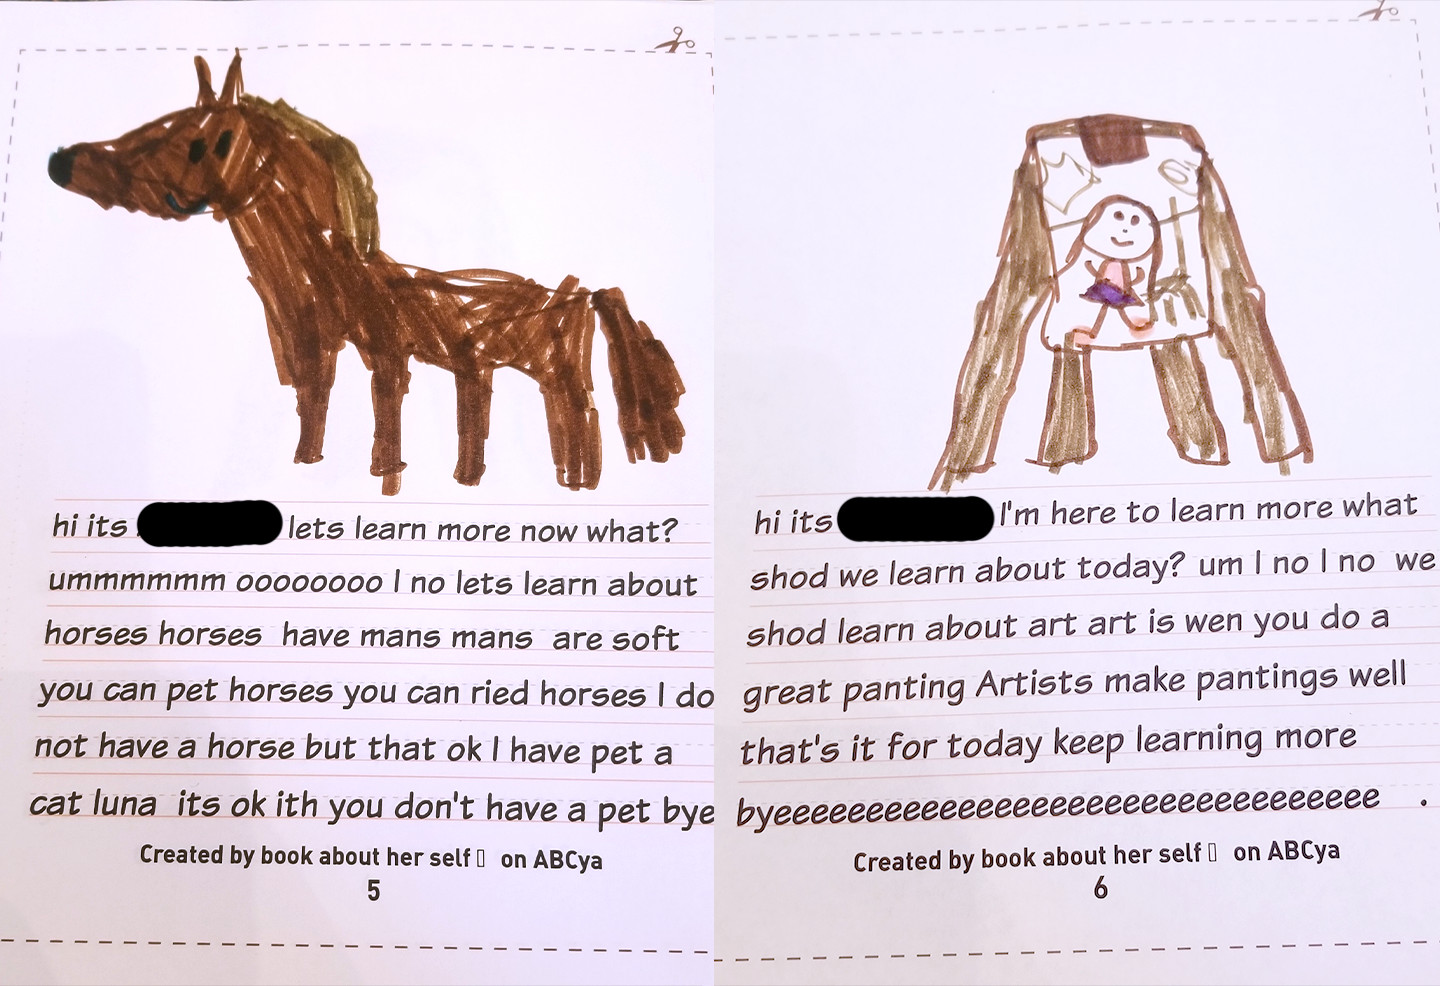 two pages of text written by a child in conversational language; one page is about horses, the other is about artists